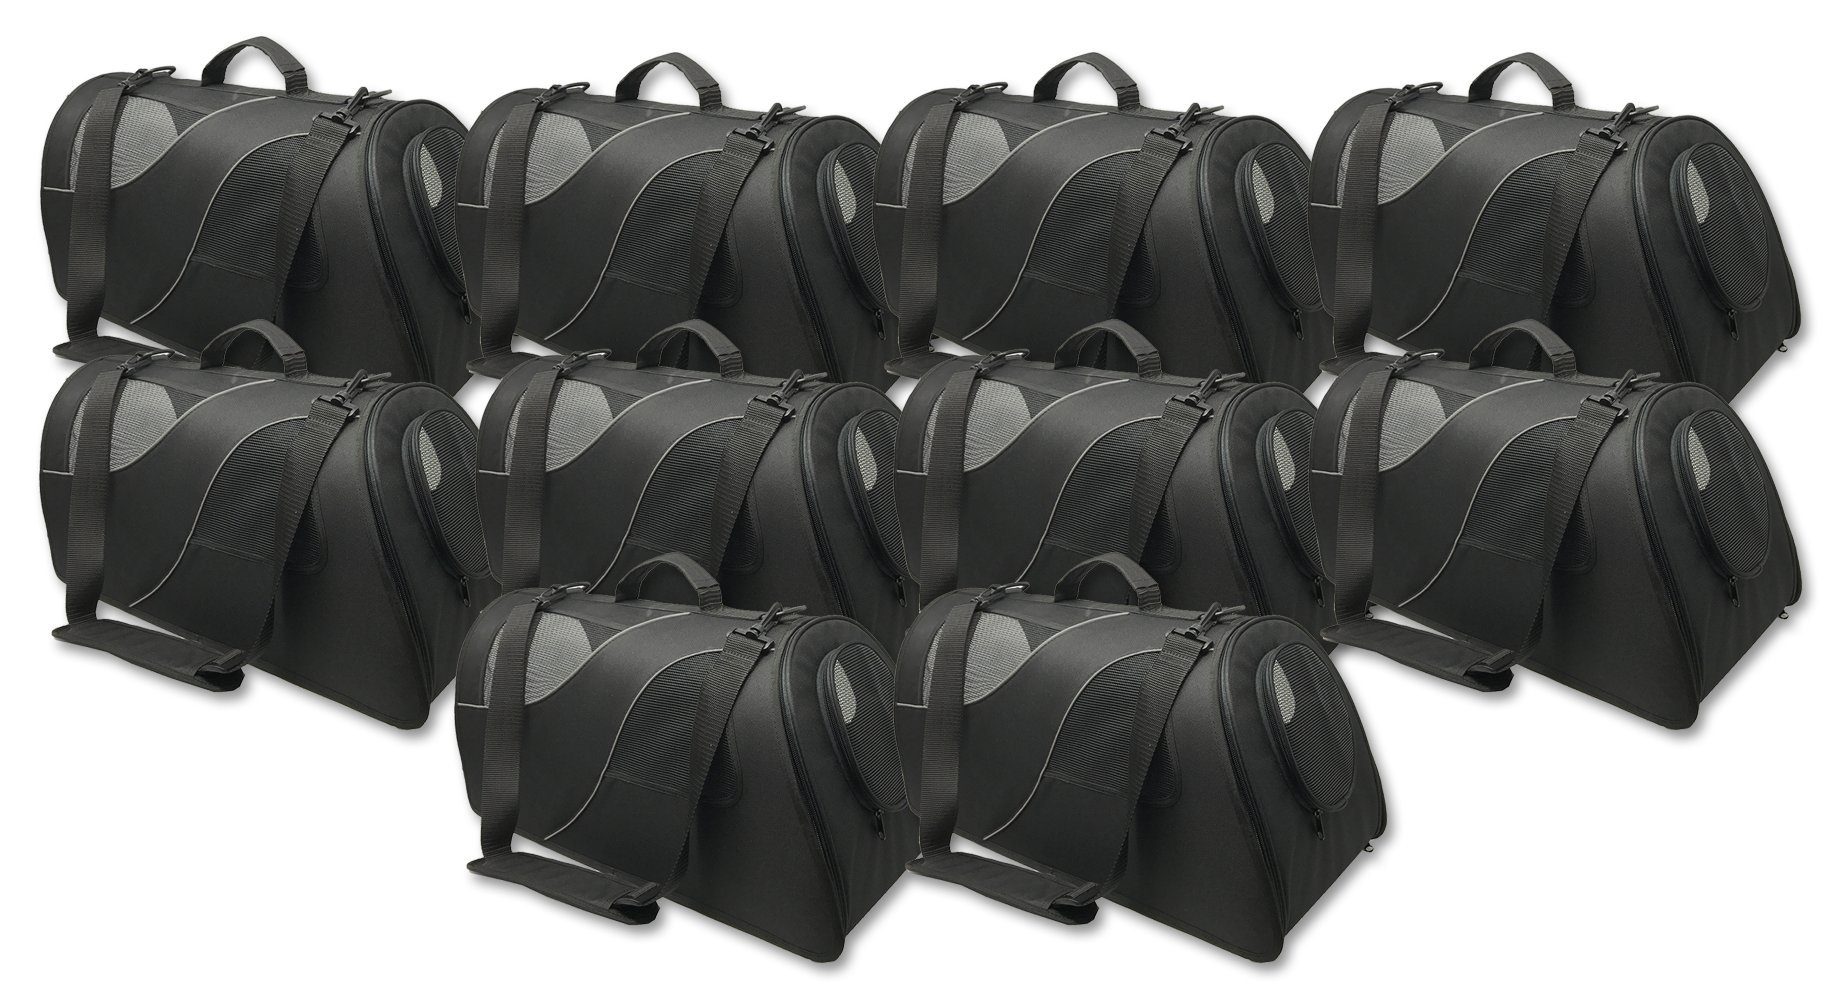 Fuzzy Buddy FB-SS-BL-10 Soft-Sided Pet Carrier for Small Dogs and Cats, Black, 10-Pack by Fuzzy Puppy Pet Products (Image #1)